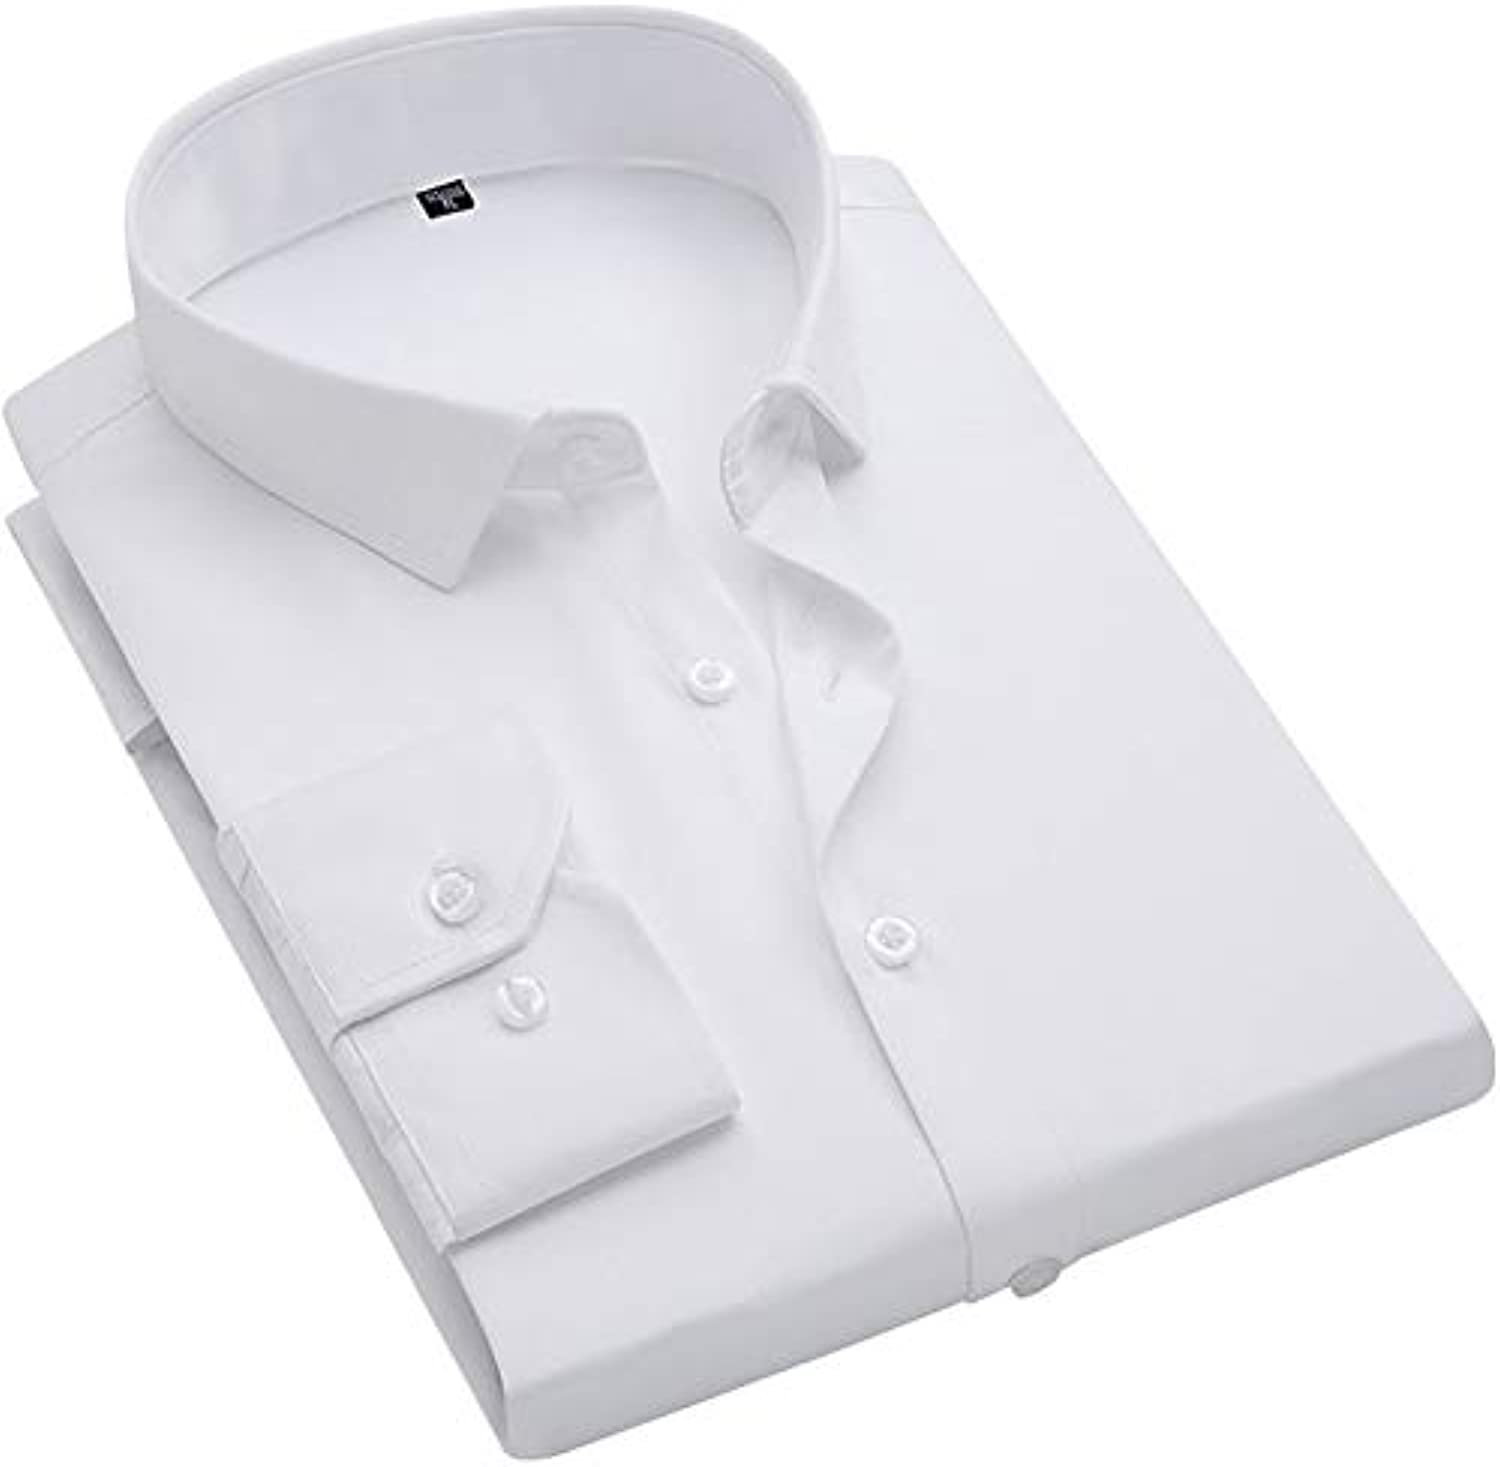 Men's Business Shirt  Solid colord